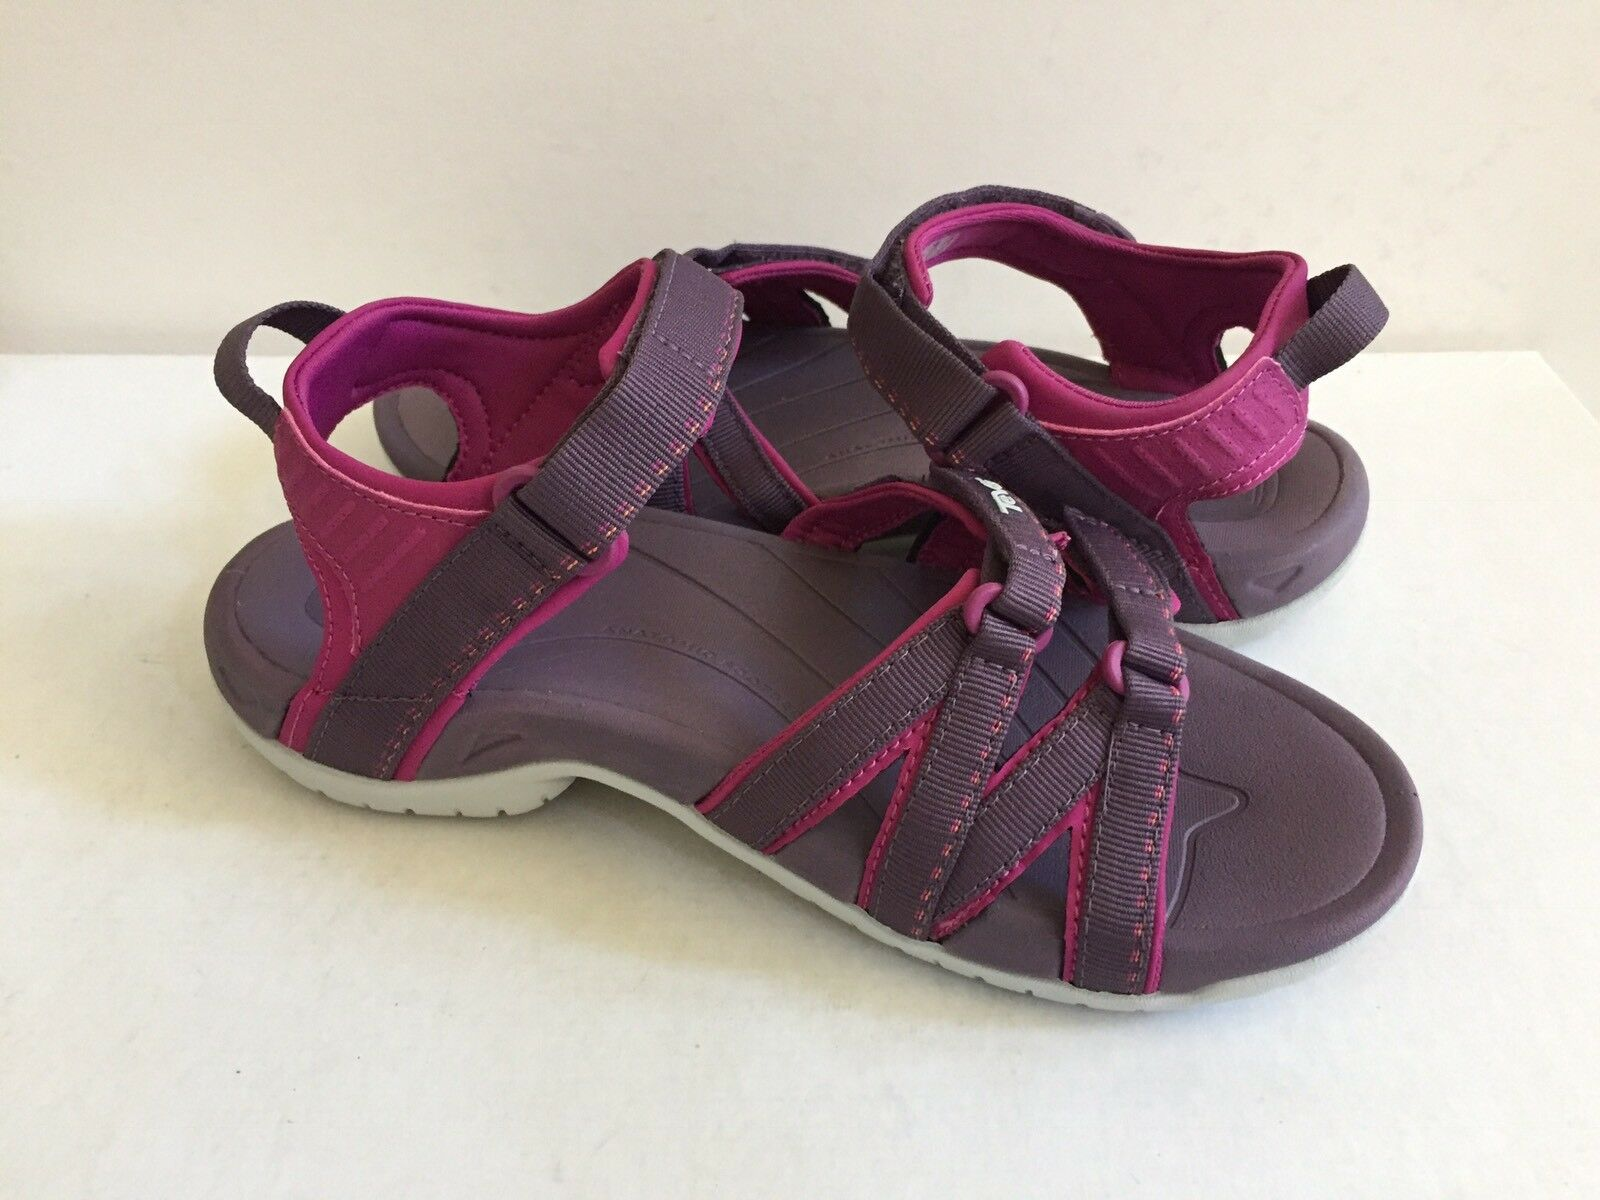 TEVA WOMEN TIRRA DASH 7 PURPLE SPORTS SANDAL US 7 DASH / EU 38 / UK 5 NEW 9ca16d